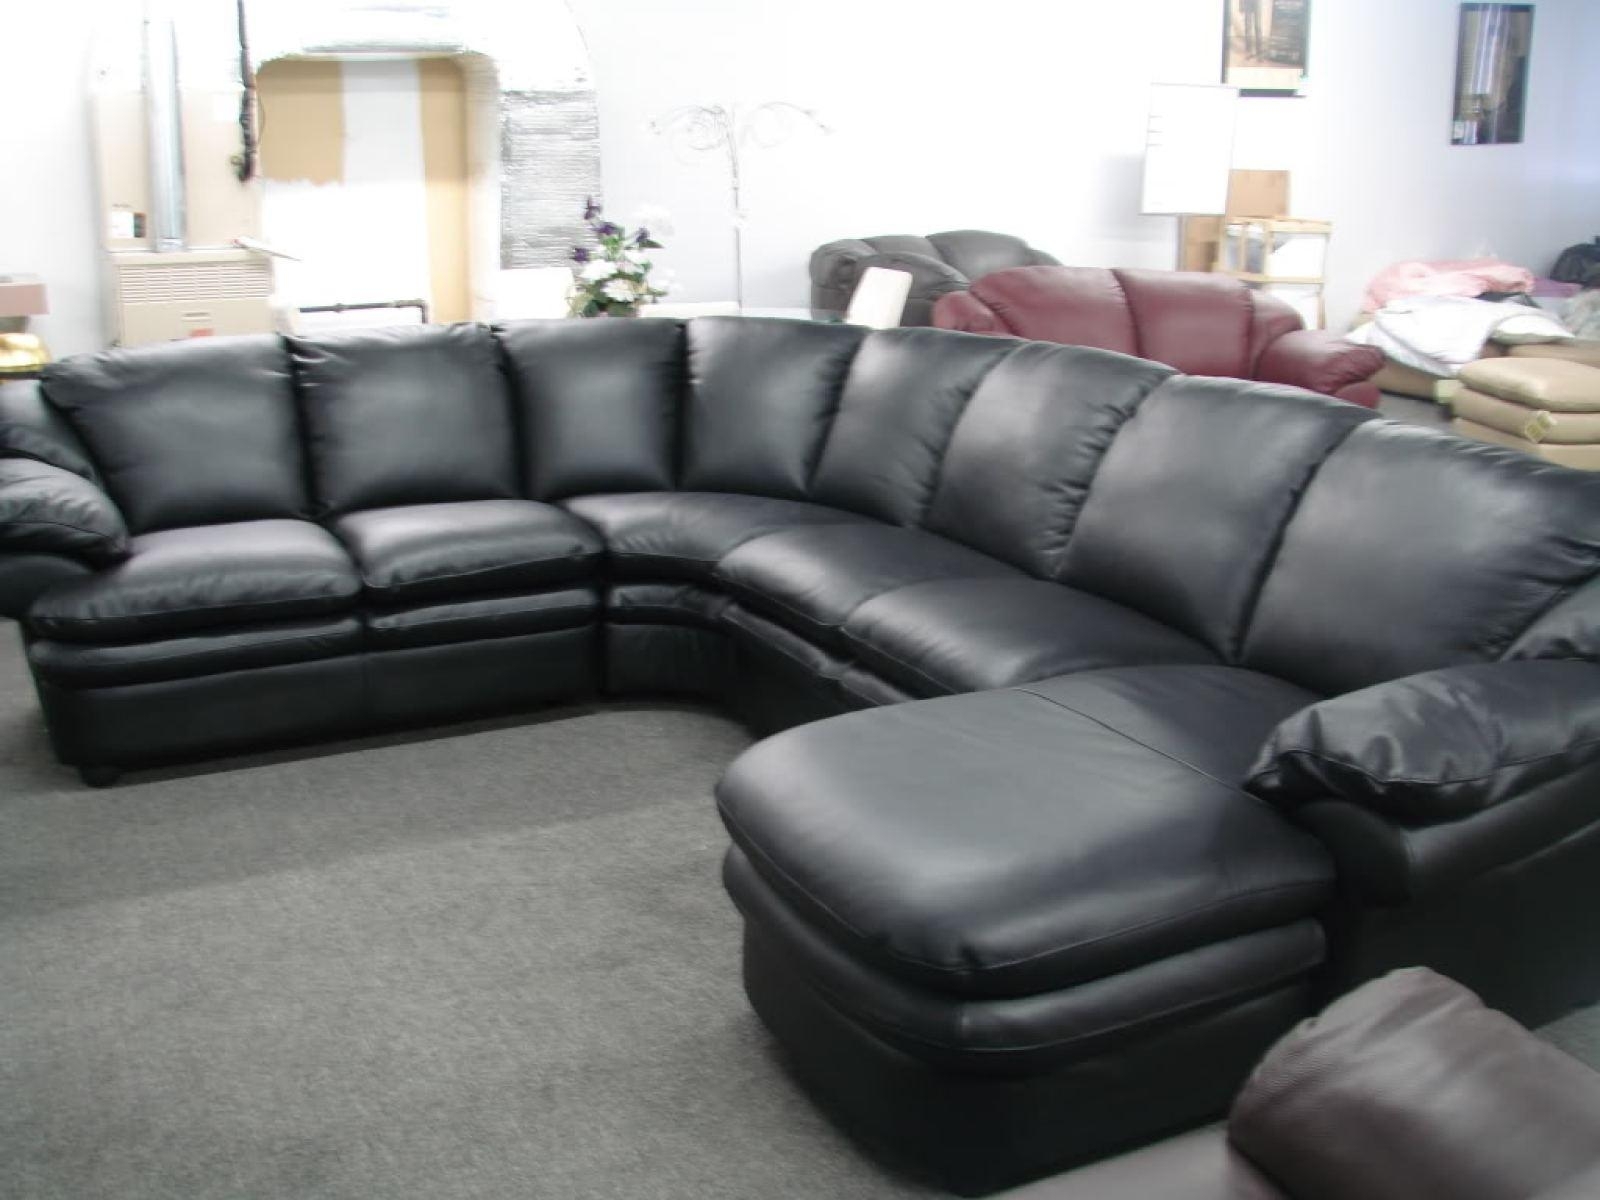 ▻ Sofa : 23 Fascinating Leather Sofa Bed Wonderful Sofa Beds Throughout Leather Sofa Beds With Storage (View 17 of 20)